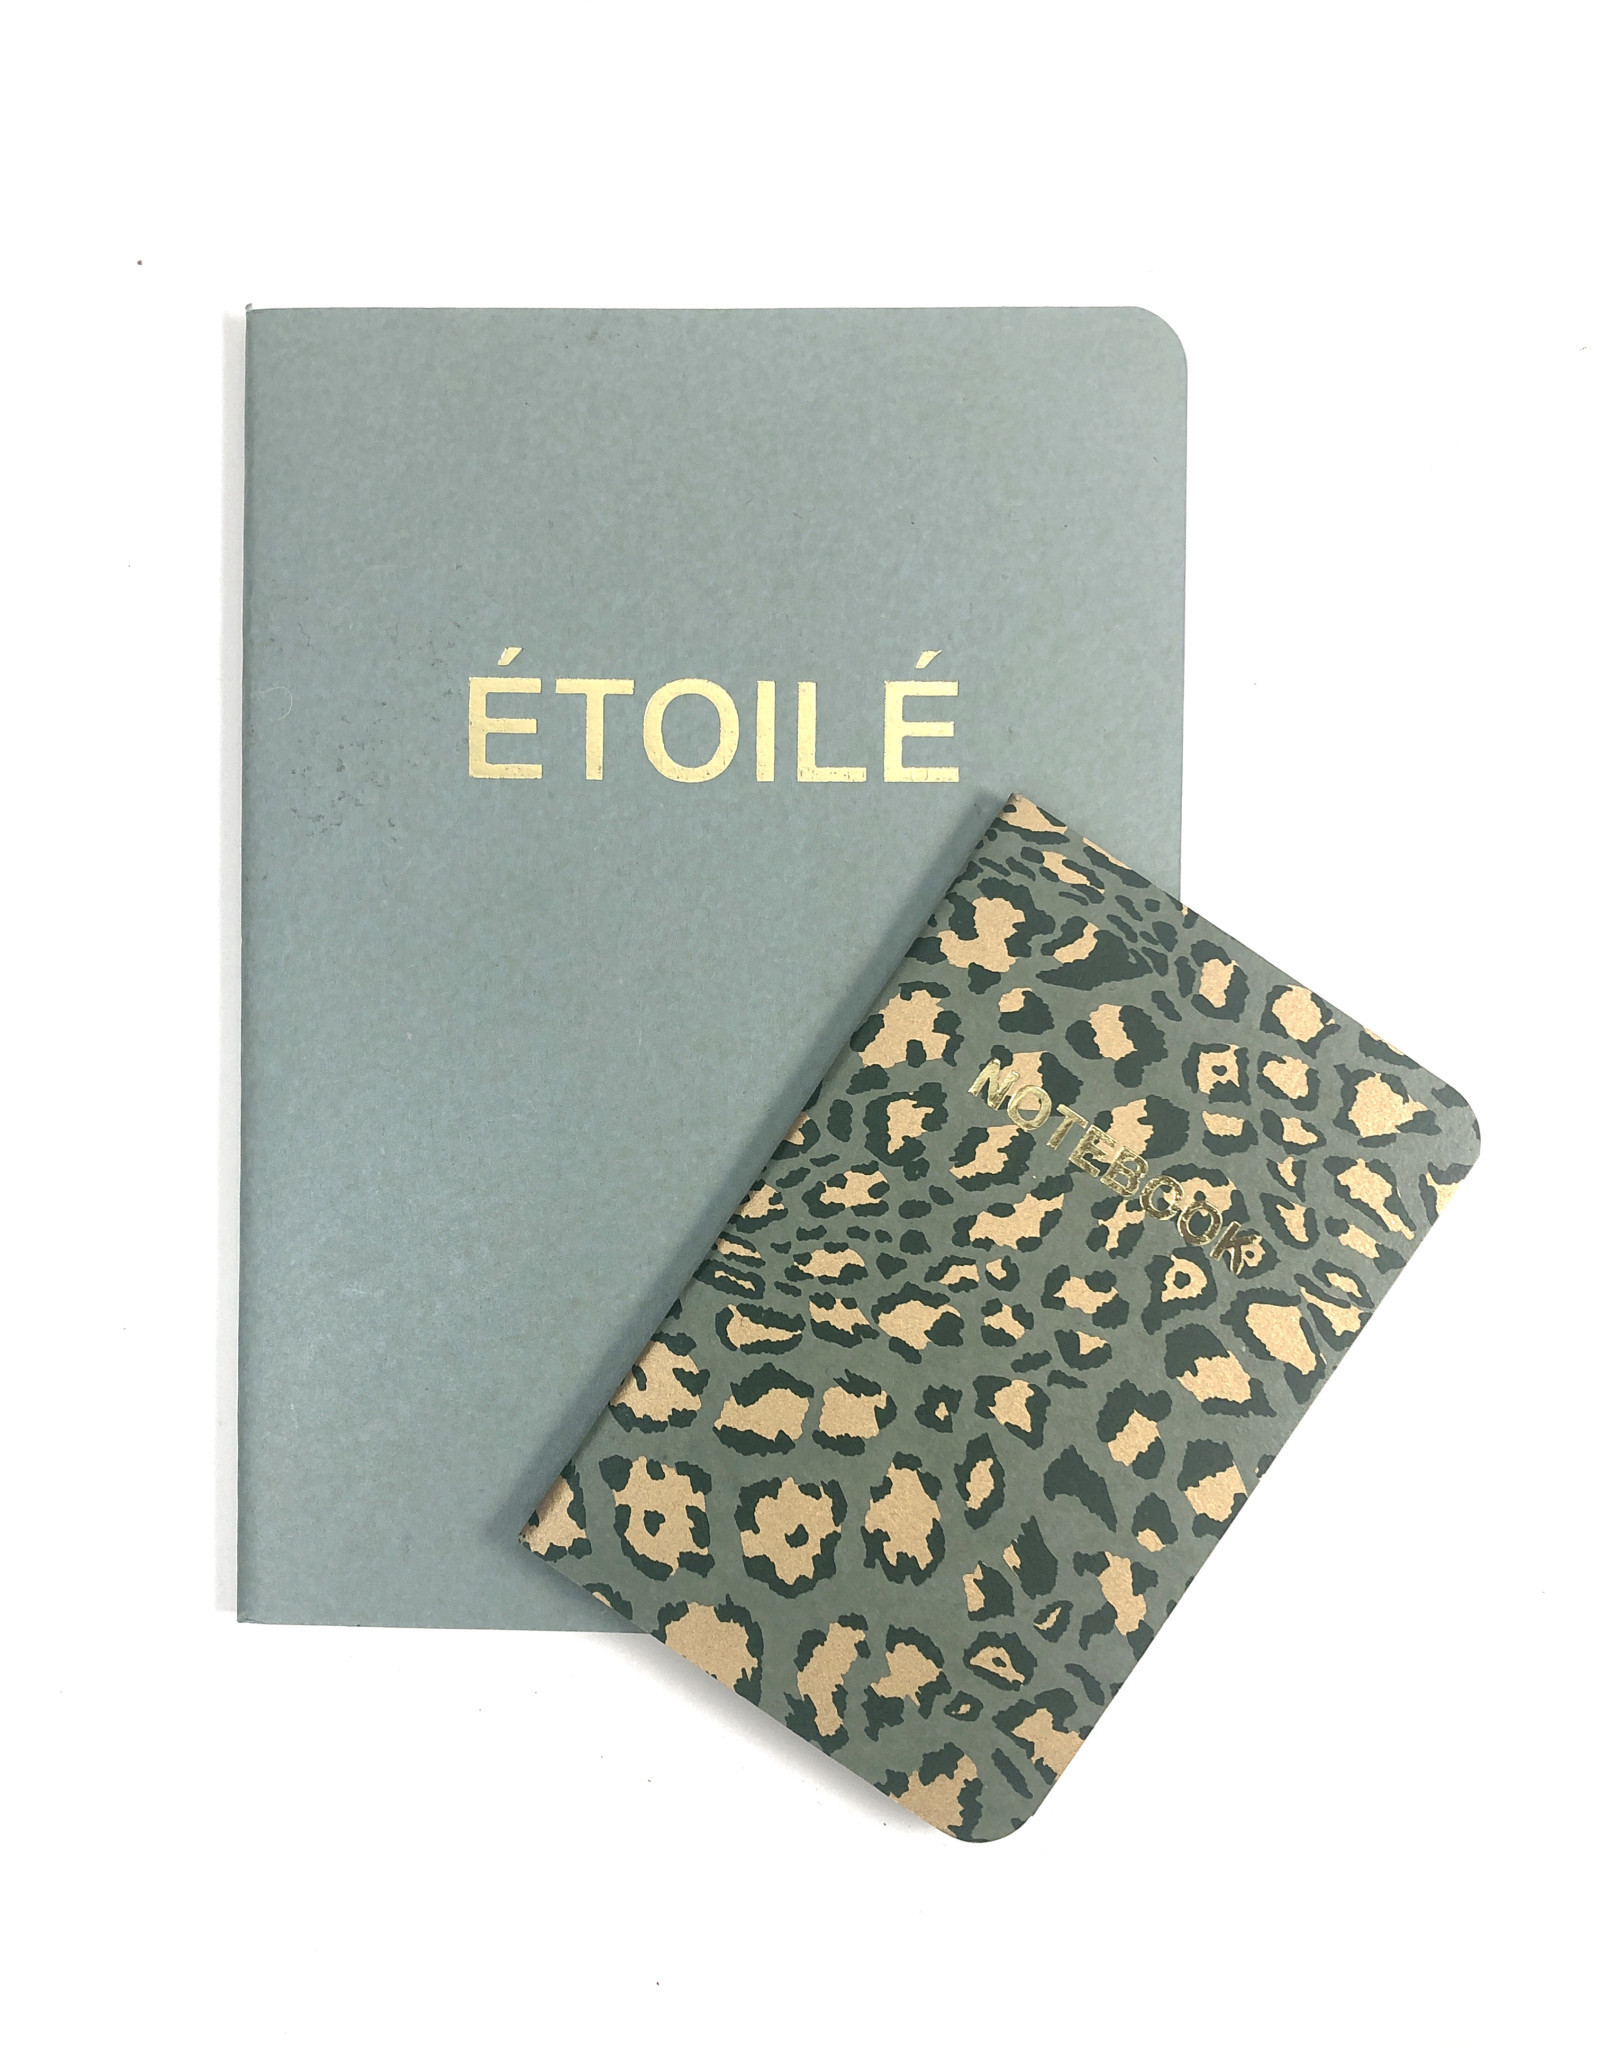 SET of 2, Soft Cover Notebooks, Jadeite Etoile + agave green Leopard